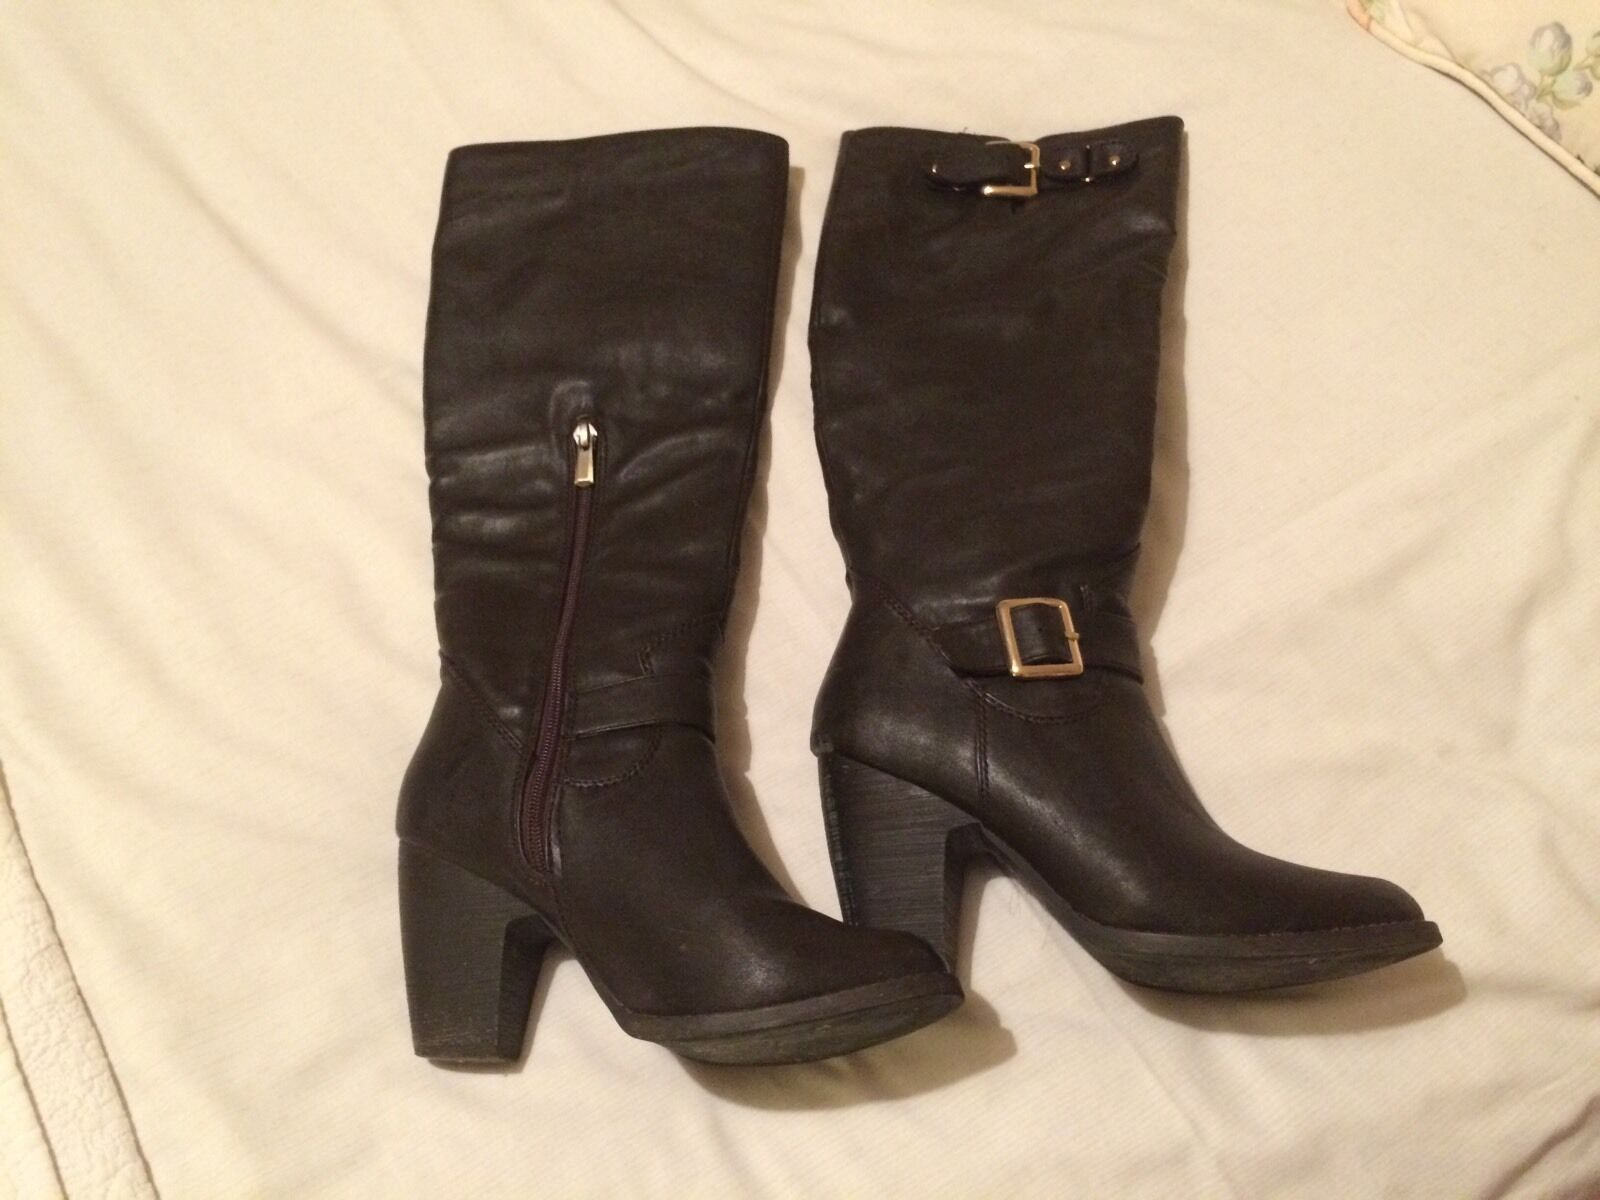 Moda In Pelle Brown Boots